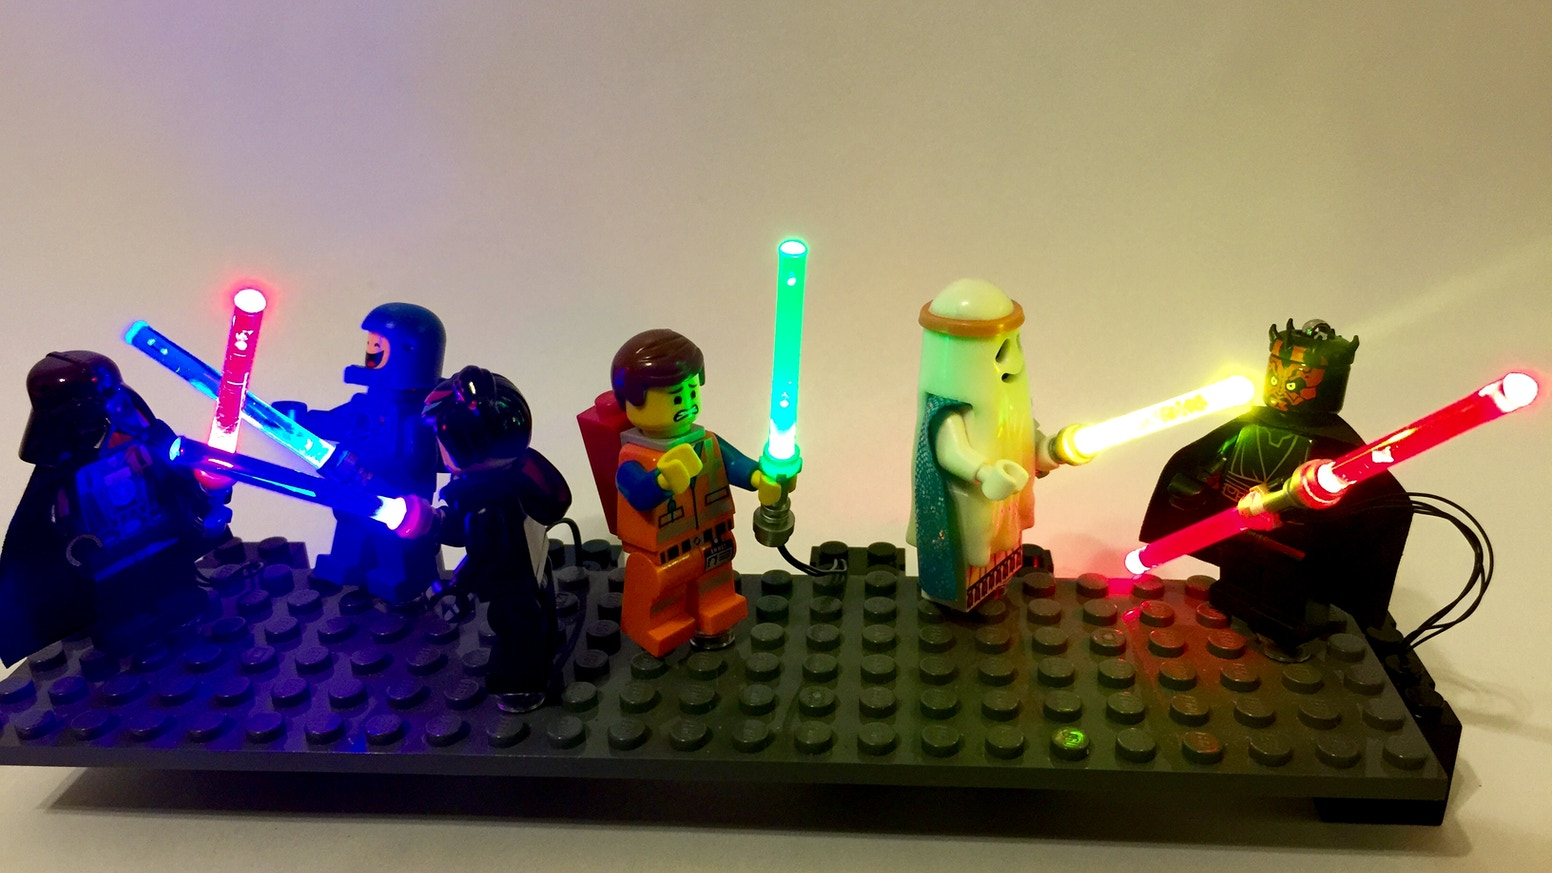 Lego Star Wars Lightup Lightsabers